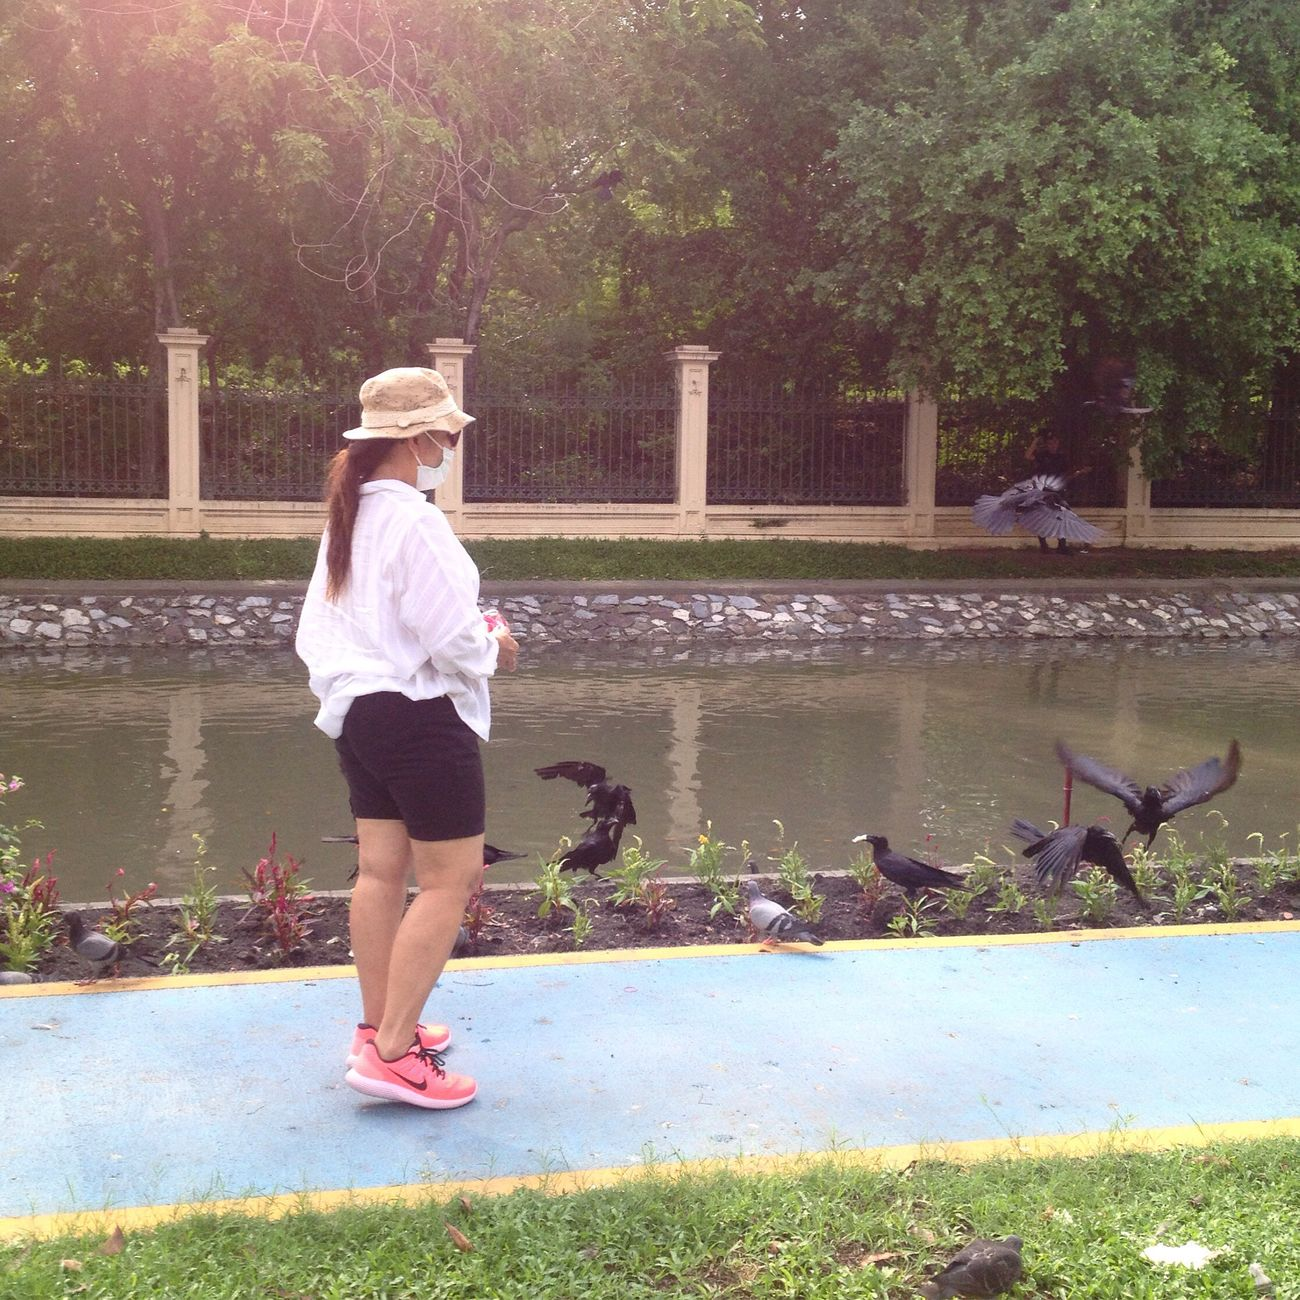 Walking Water Leisure Activity One Person Real People Full Length Lifestyles Outdoors Day Nature Lake Animals In The Wild Young Women Tree Young Adult Large Group Of Animals Bird Grass Mammal People